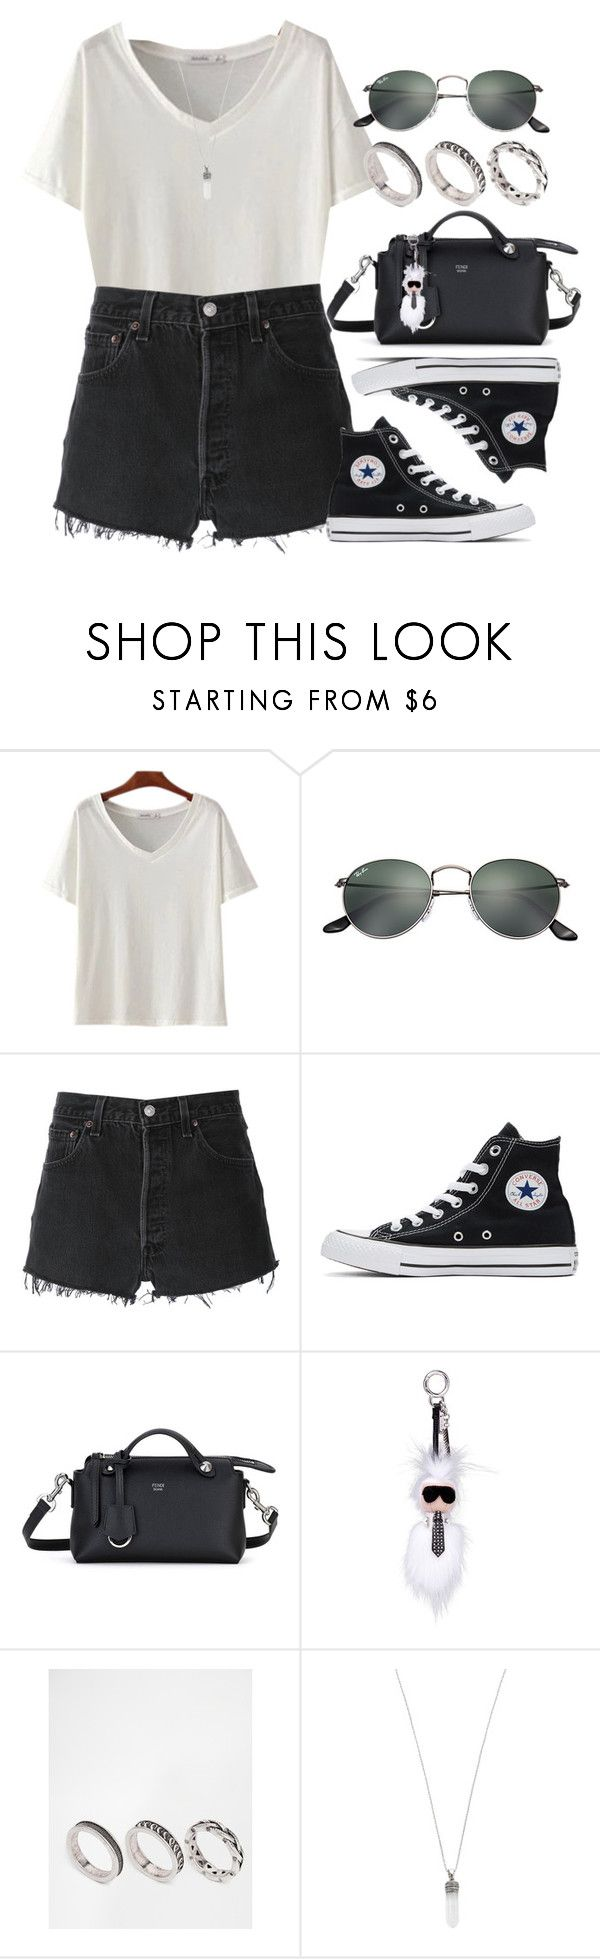 """Sin título #12698"" by vany-alvarado ❤ liked on Polyvore featuring Ray-Ban, RE/DONE, Converse, Fendi, ASOS and Marc Jacobs"